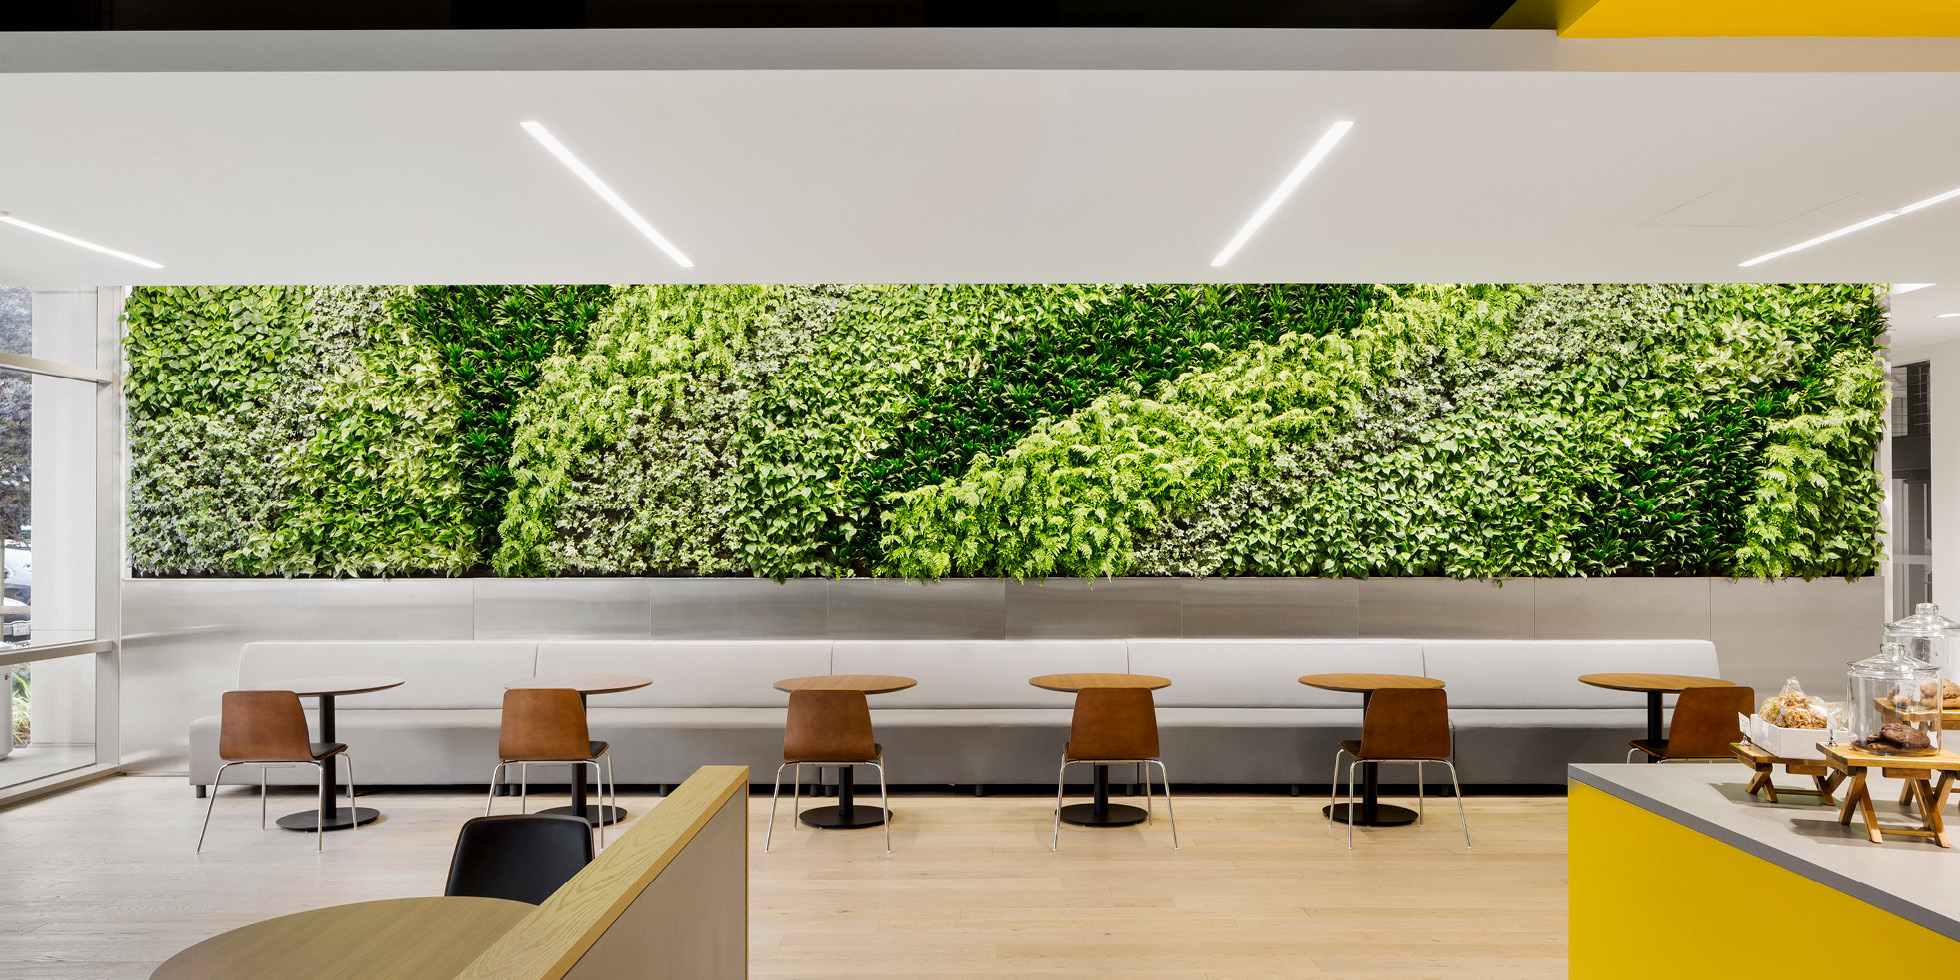 Palo Alto Networks Living Wall by Habitat Horticulture - View 1